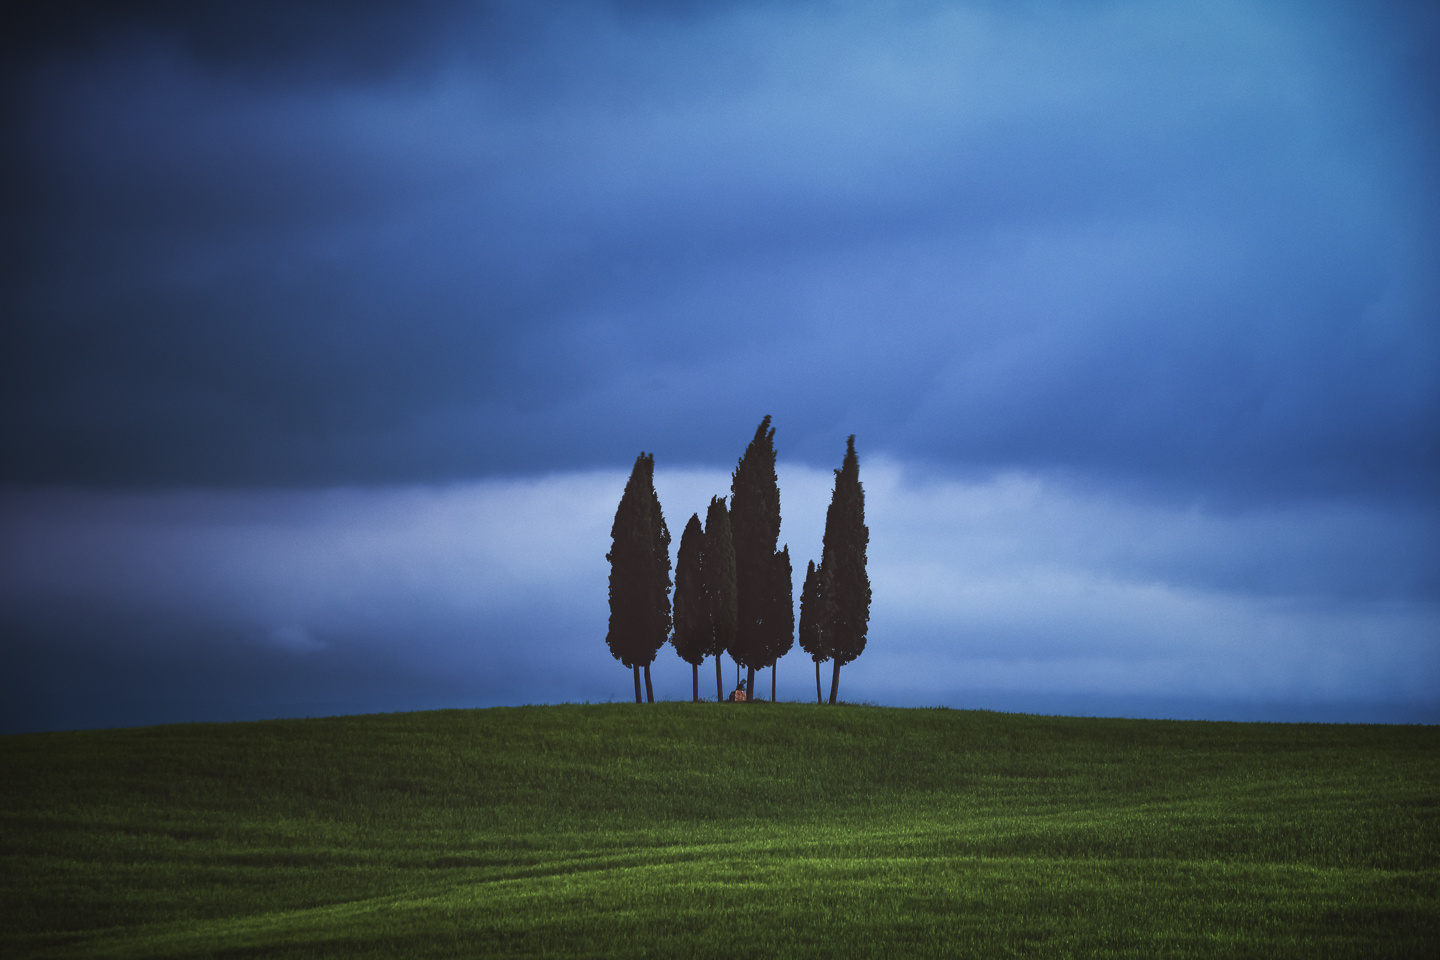 Tuscany - Cypress Hill by Jean Claude Castor